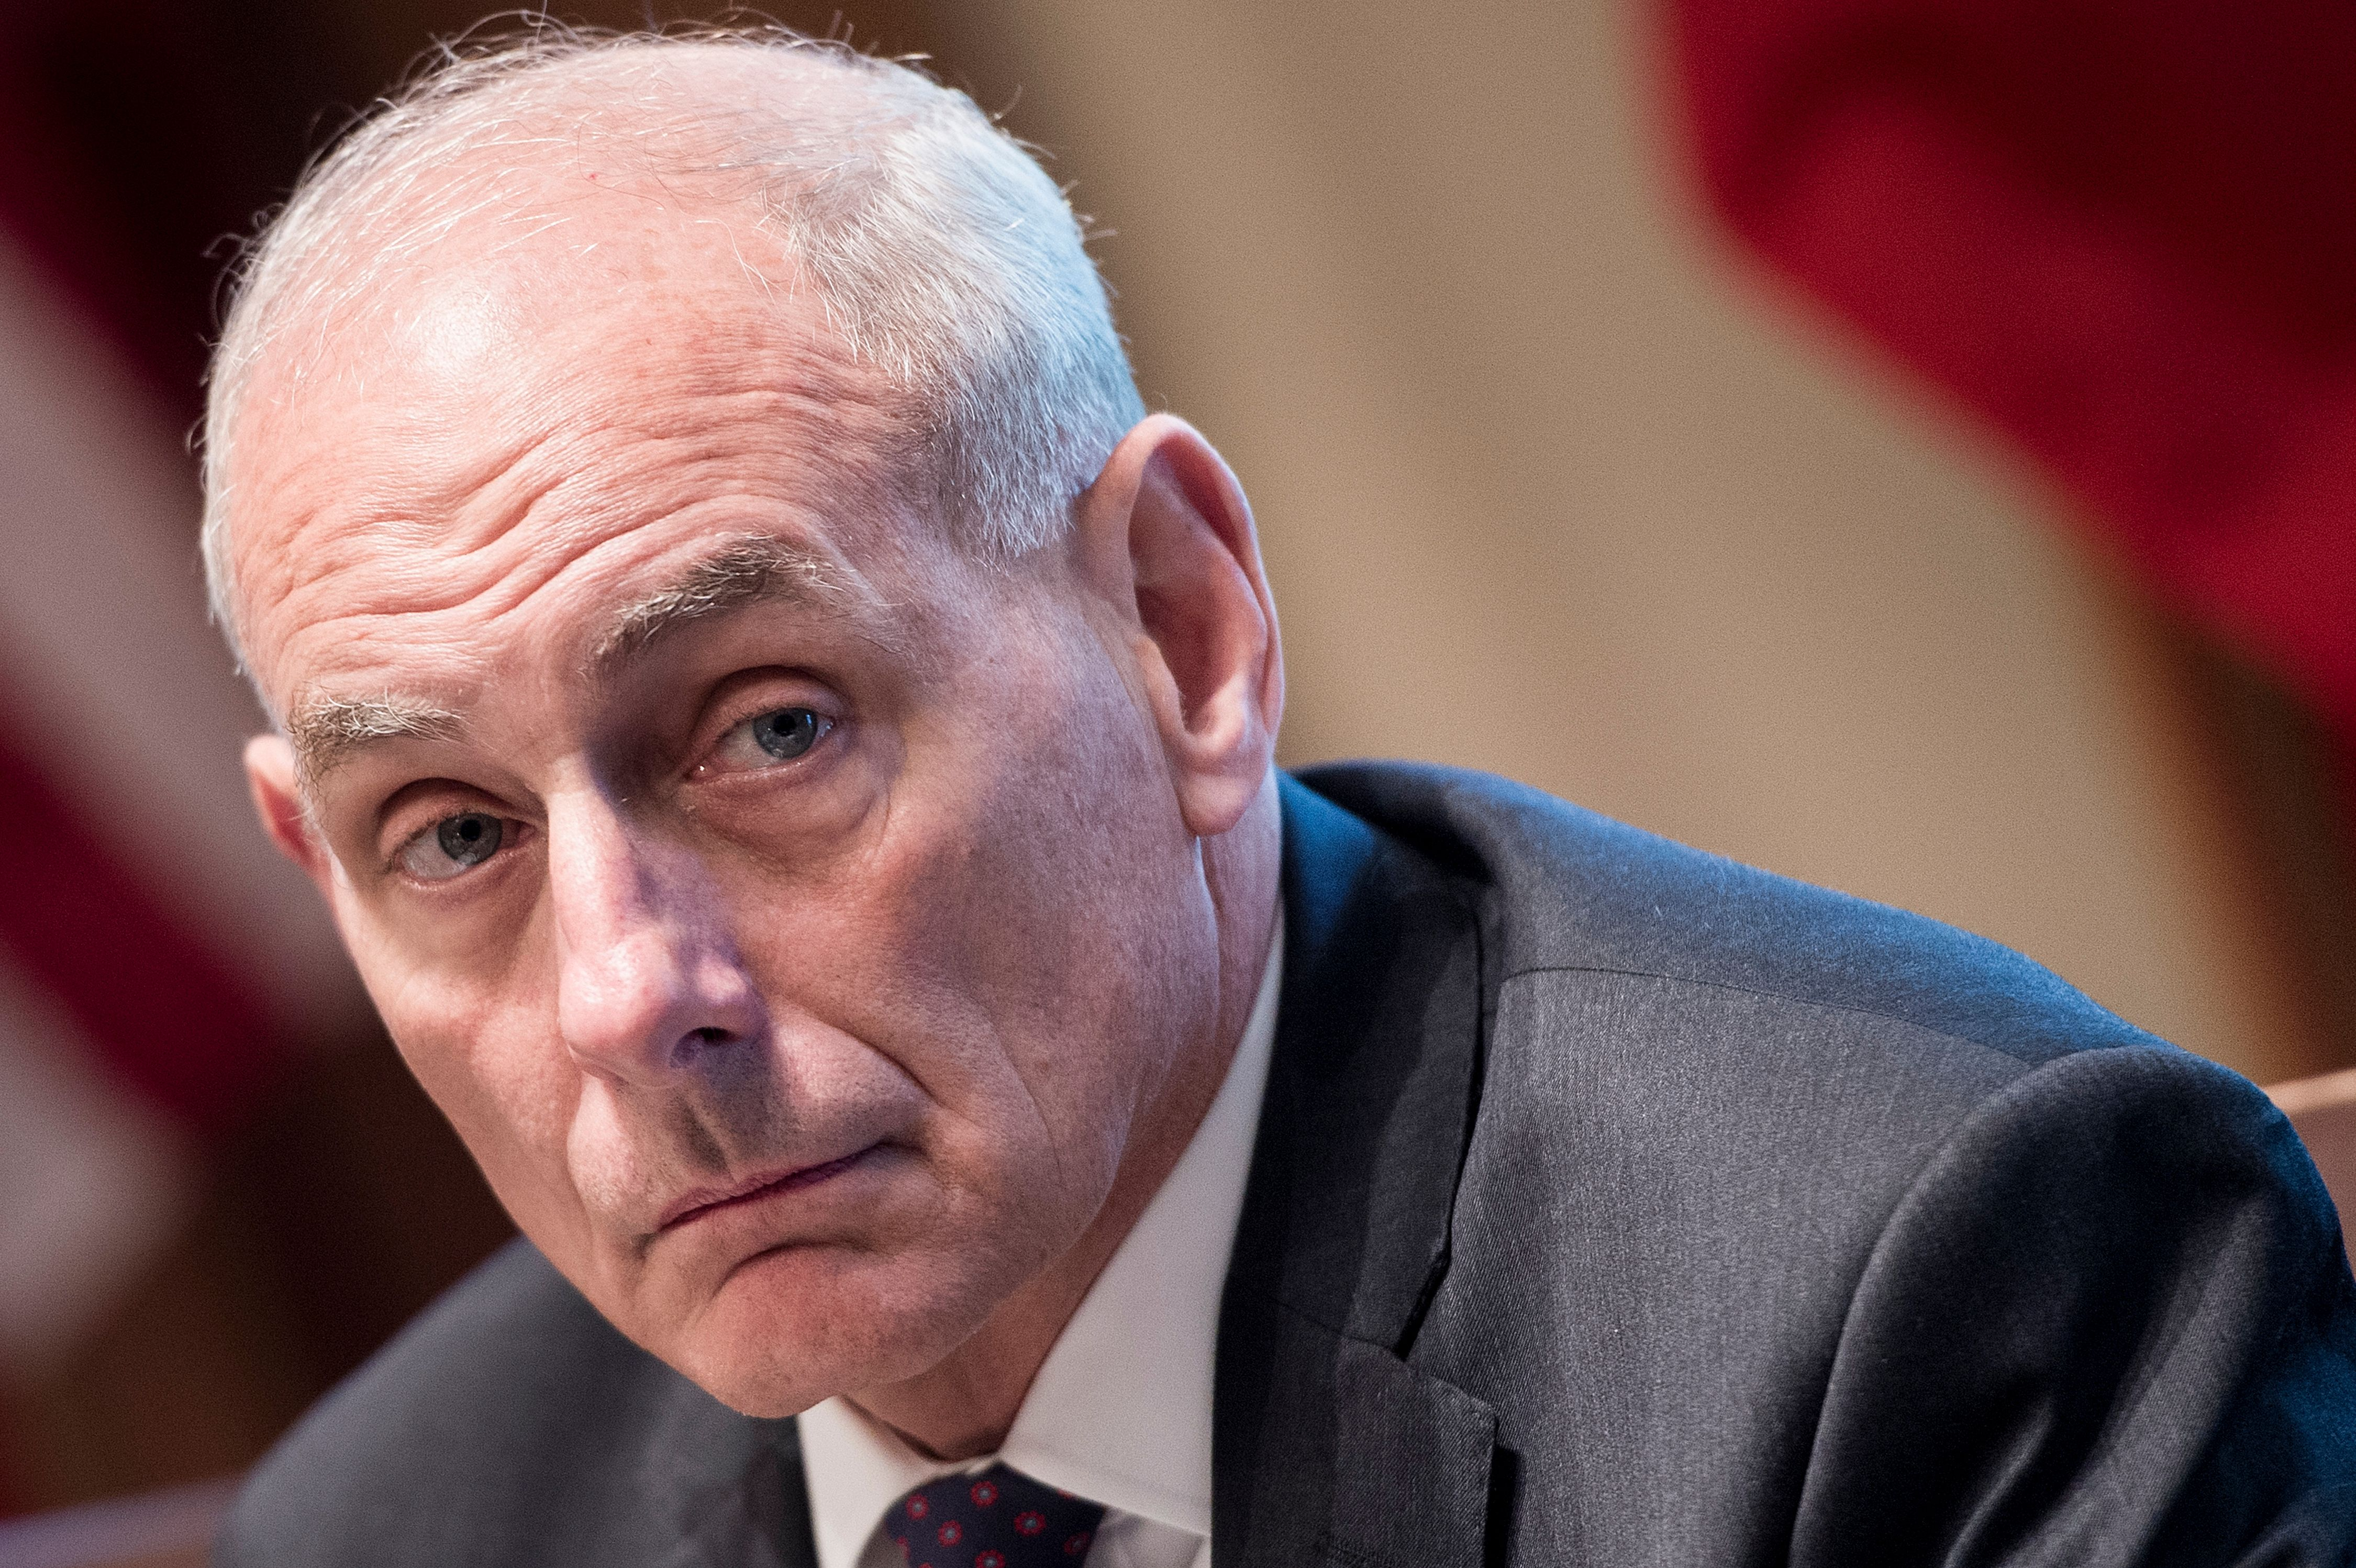 White House Chief of Staff John Kelly waits for a luncheon with Kuwait's Emir Sheikh Sabah al Ahmad Al-Sabah in the Cabinet Room of the White House